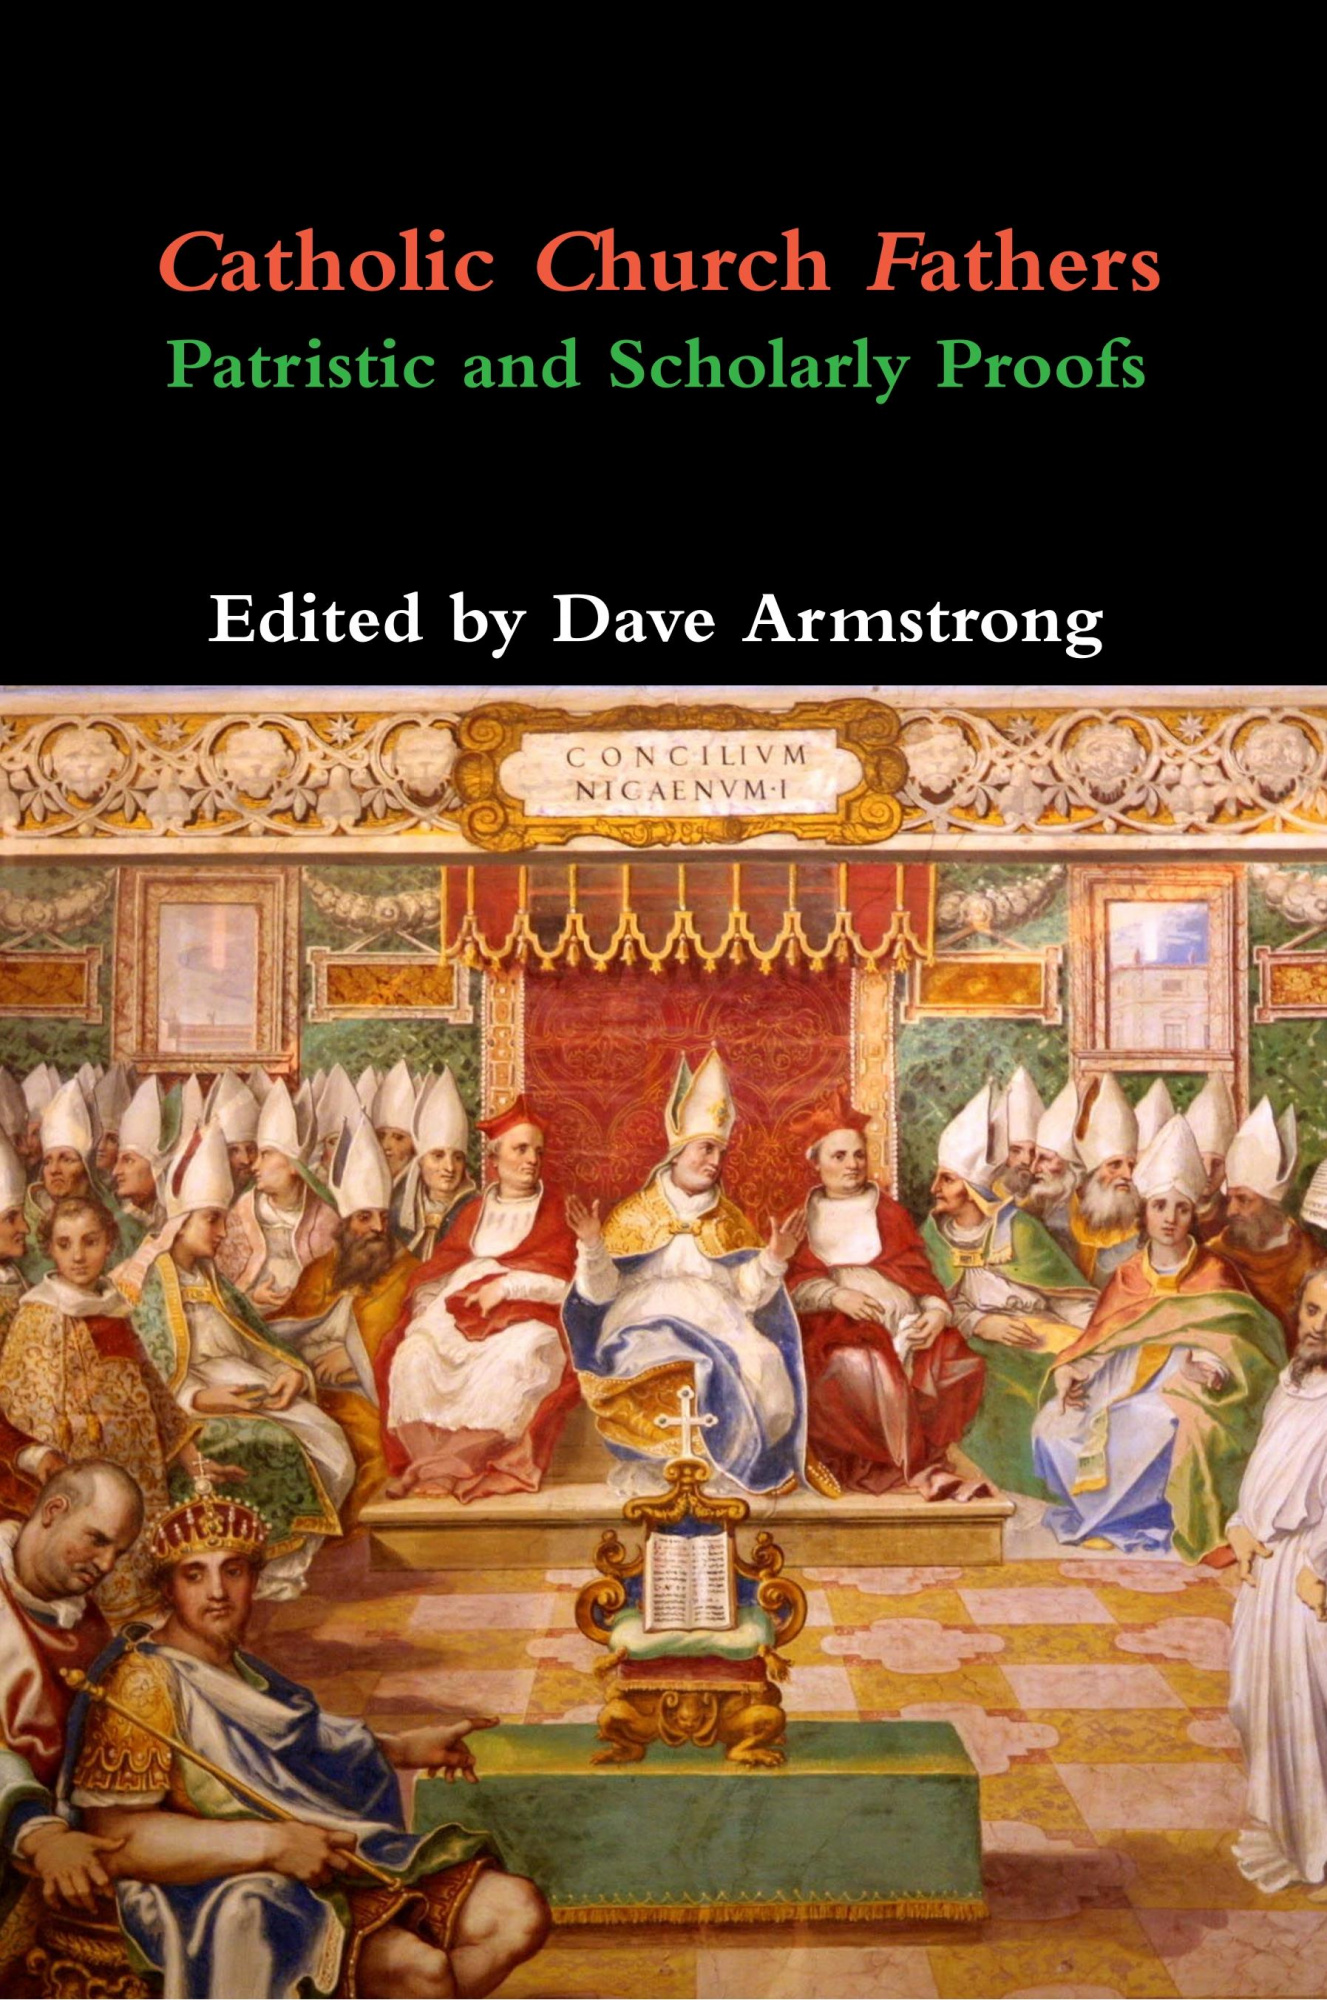 Catholic Church FathersPatristic and Scholarly Proofs